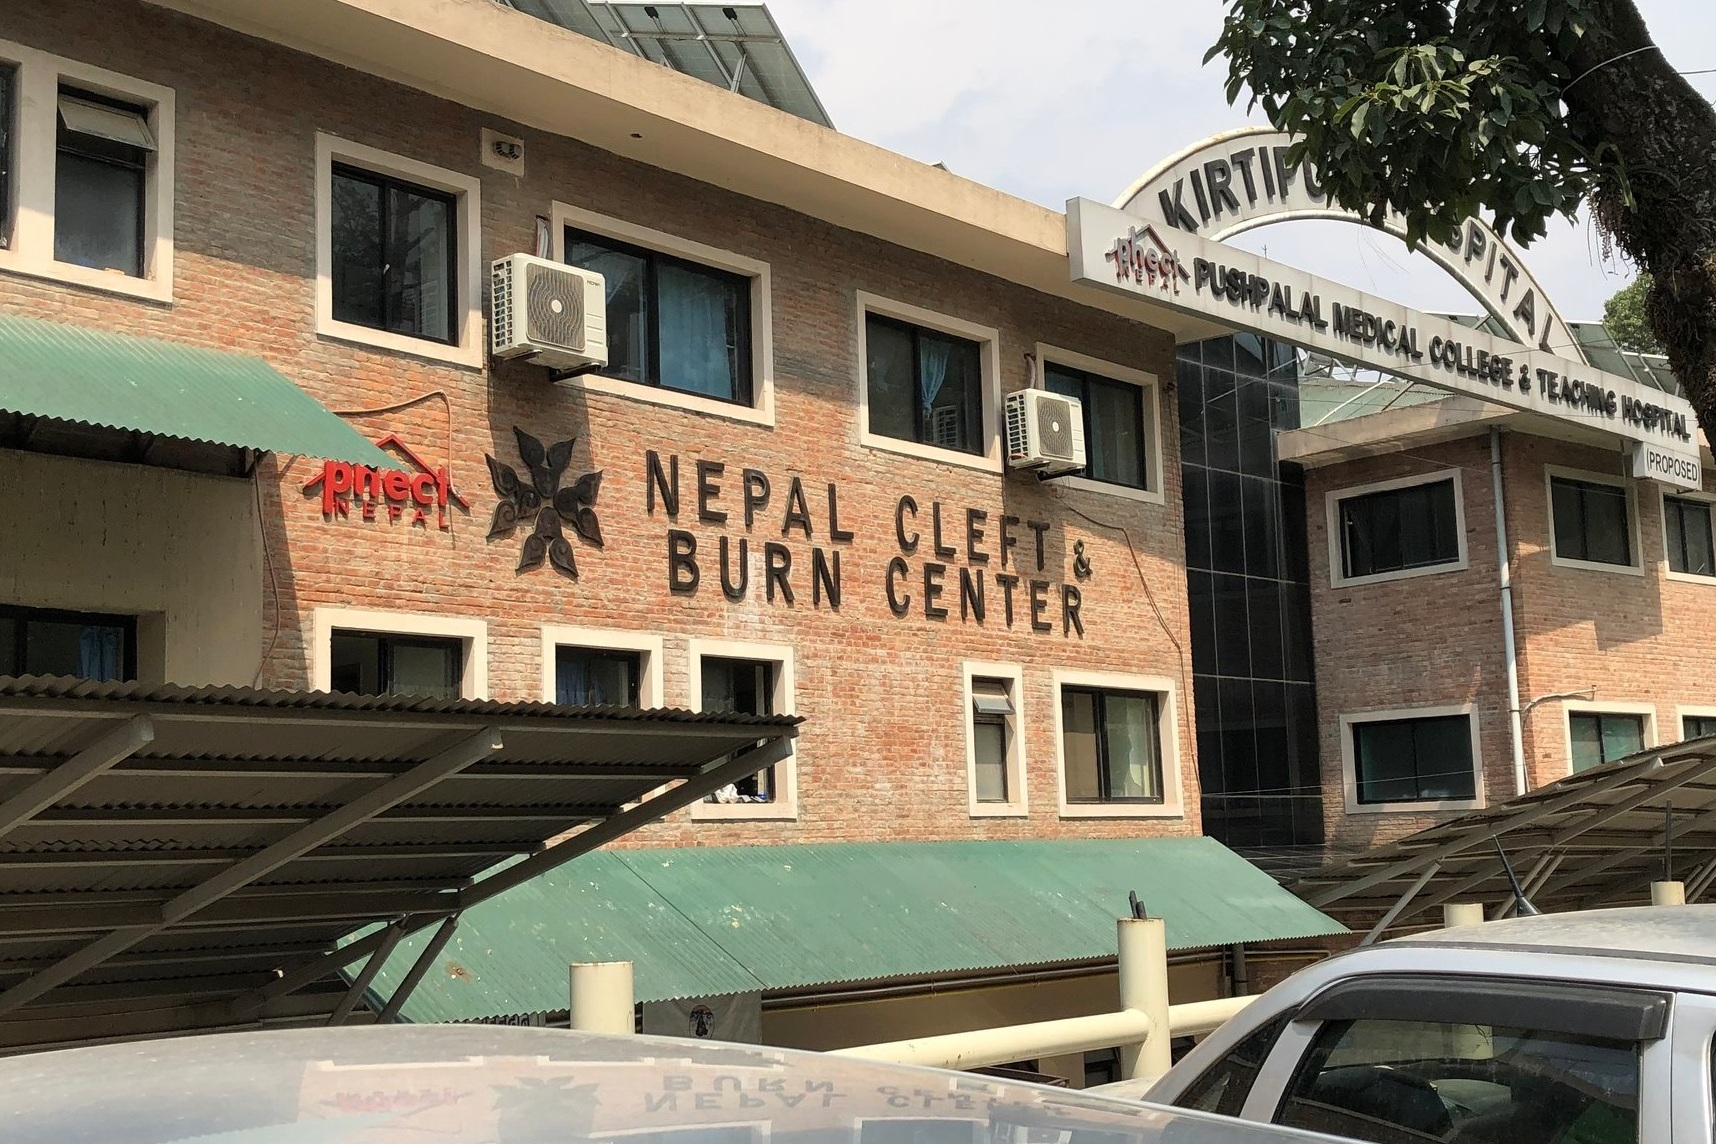 Nepal Cleft and Burn Center